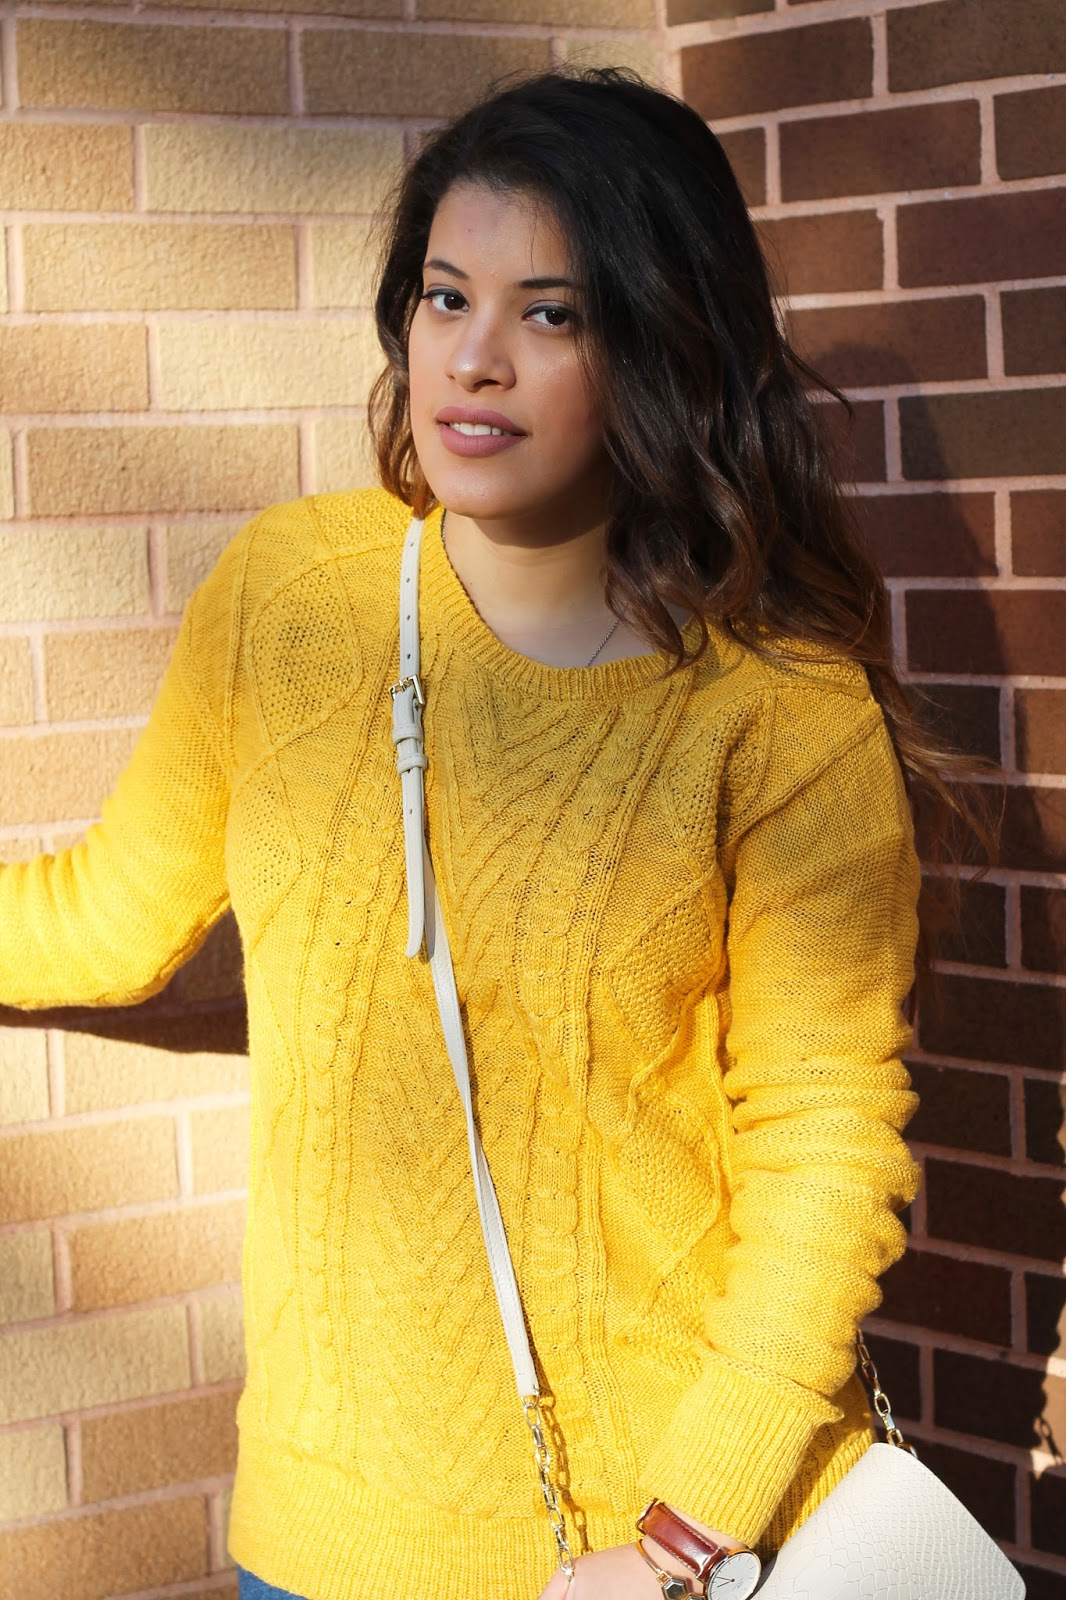 Mustard Yellow Pullover Sweater and Brown Over the Knee Boots ...